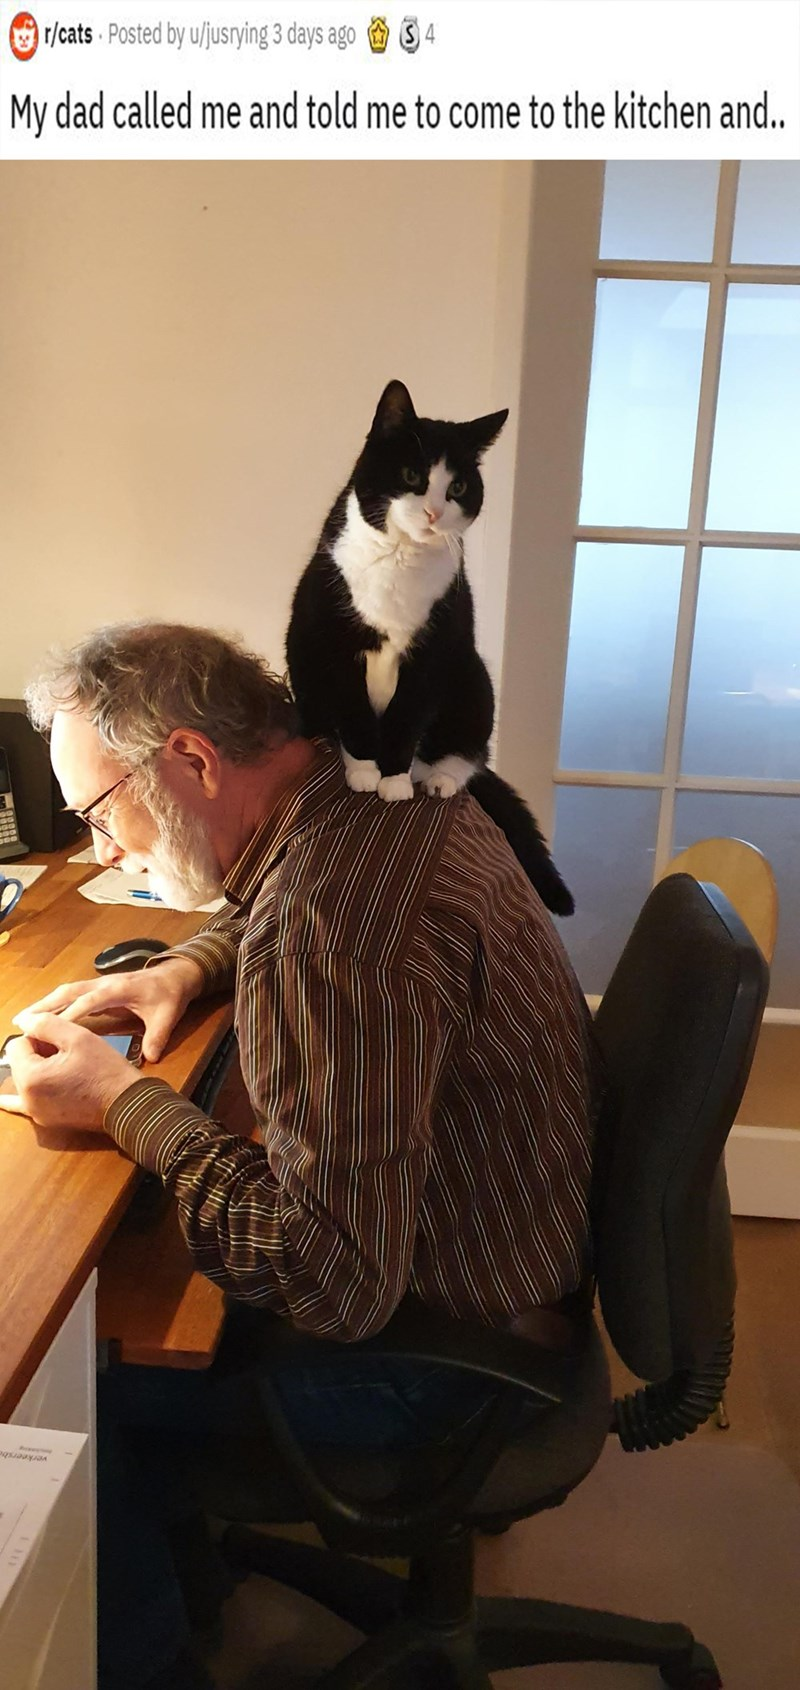 Cat - O r/cats Posted by u/jusrying 3 days ago S4 My dad called me and told me to come to the kitchen and.. verkeersbe